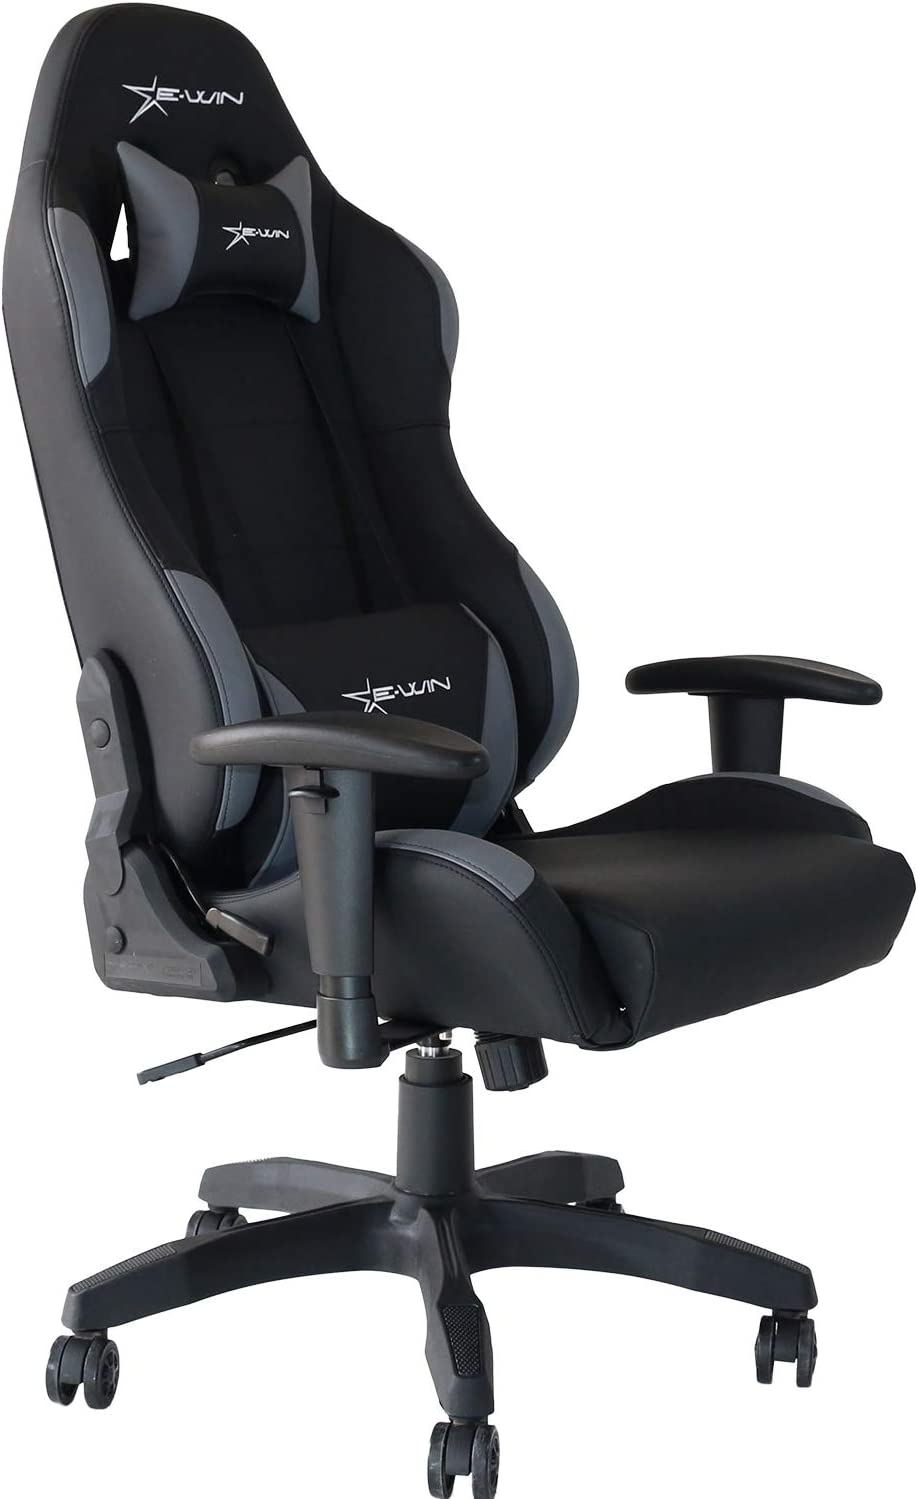 E-WIN Gaming Racing Chair 330lb Adjustable Tilt Back Angle and Armrests Ergonomic High-Back Leather Executive Computer Desk Office Chair Calling Series Black Grey